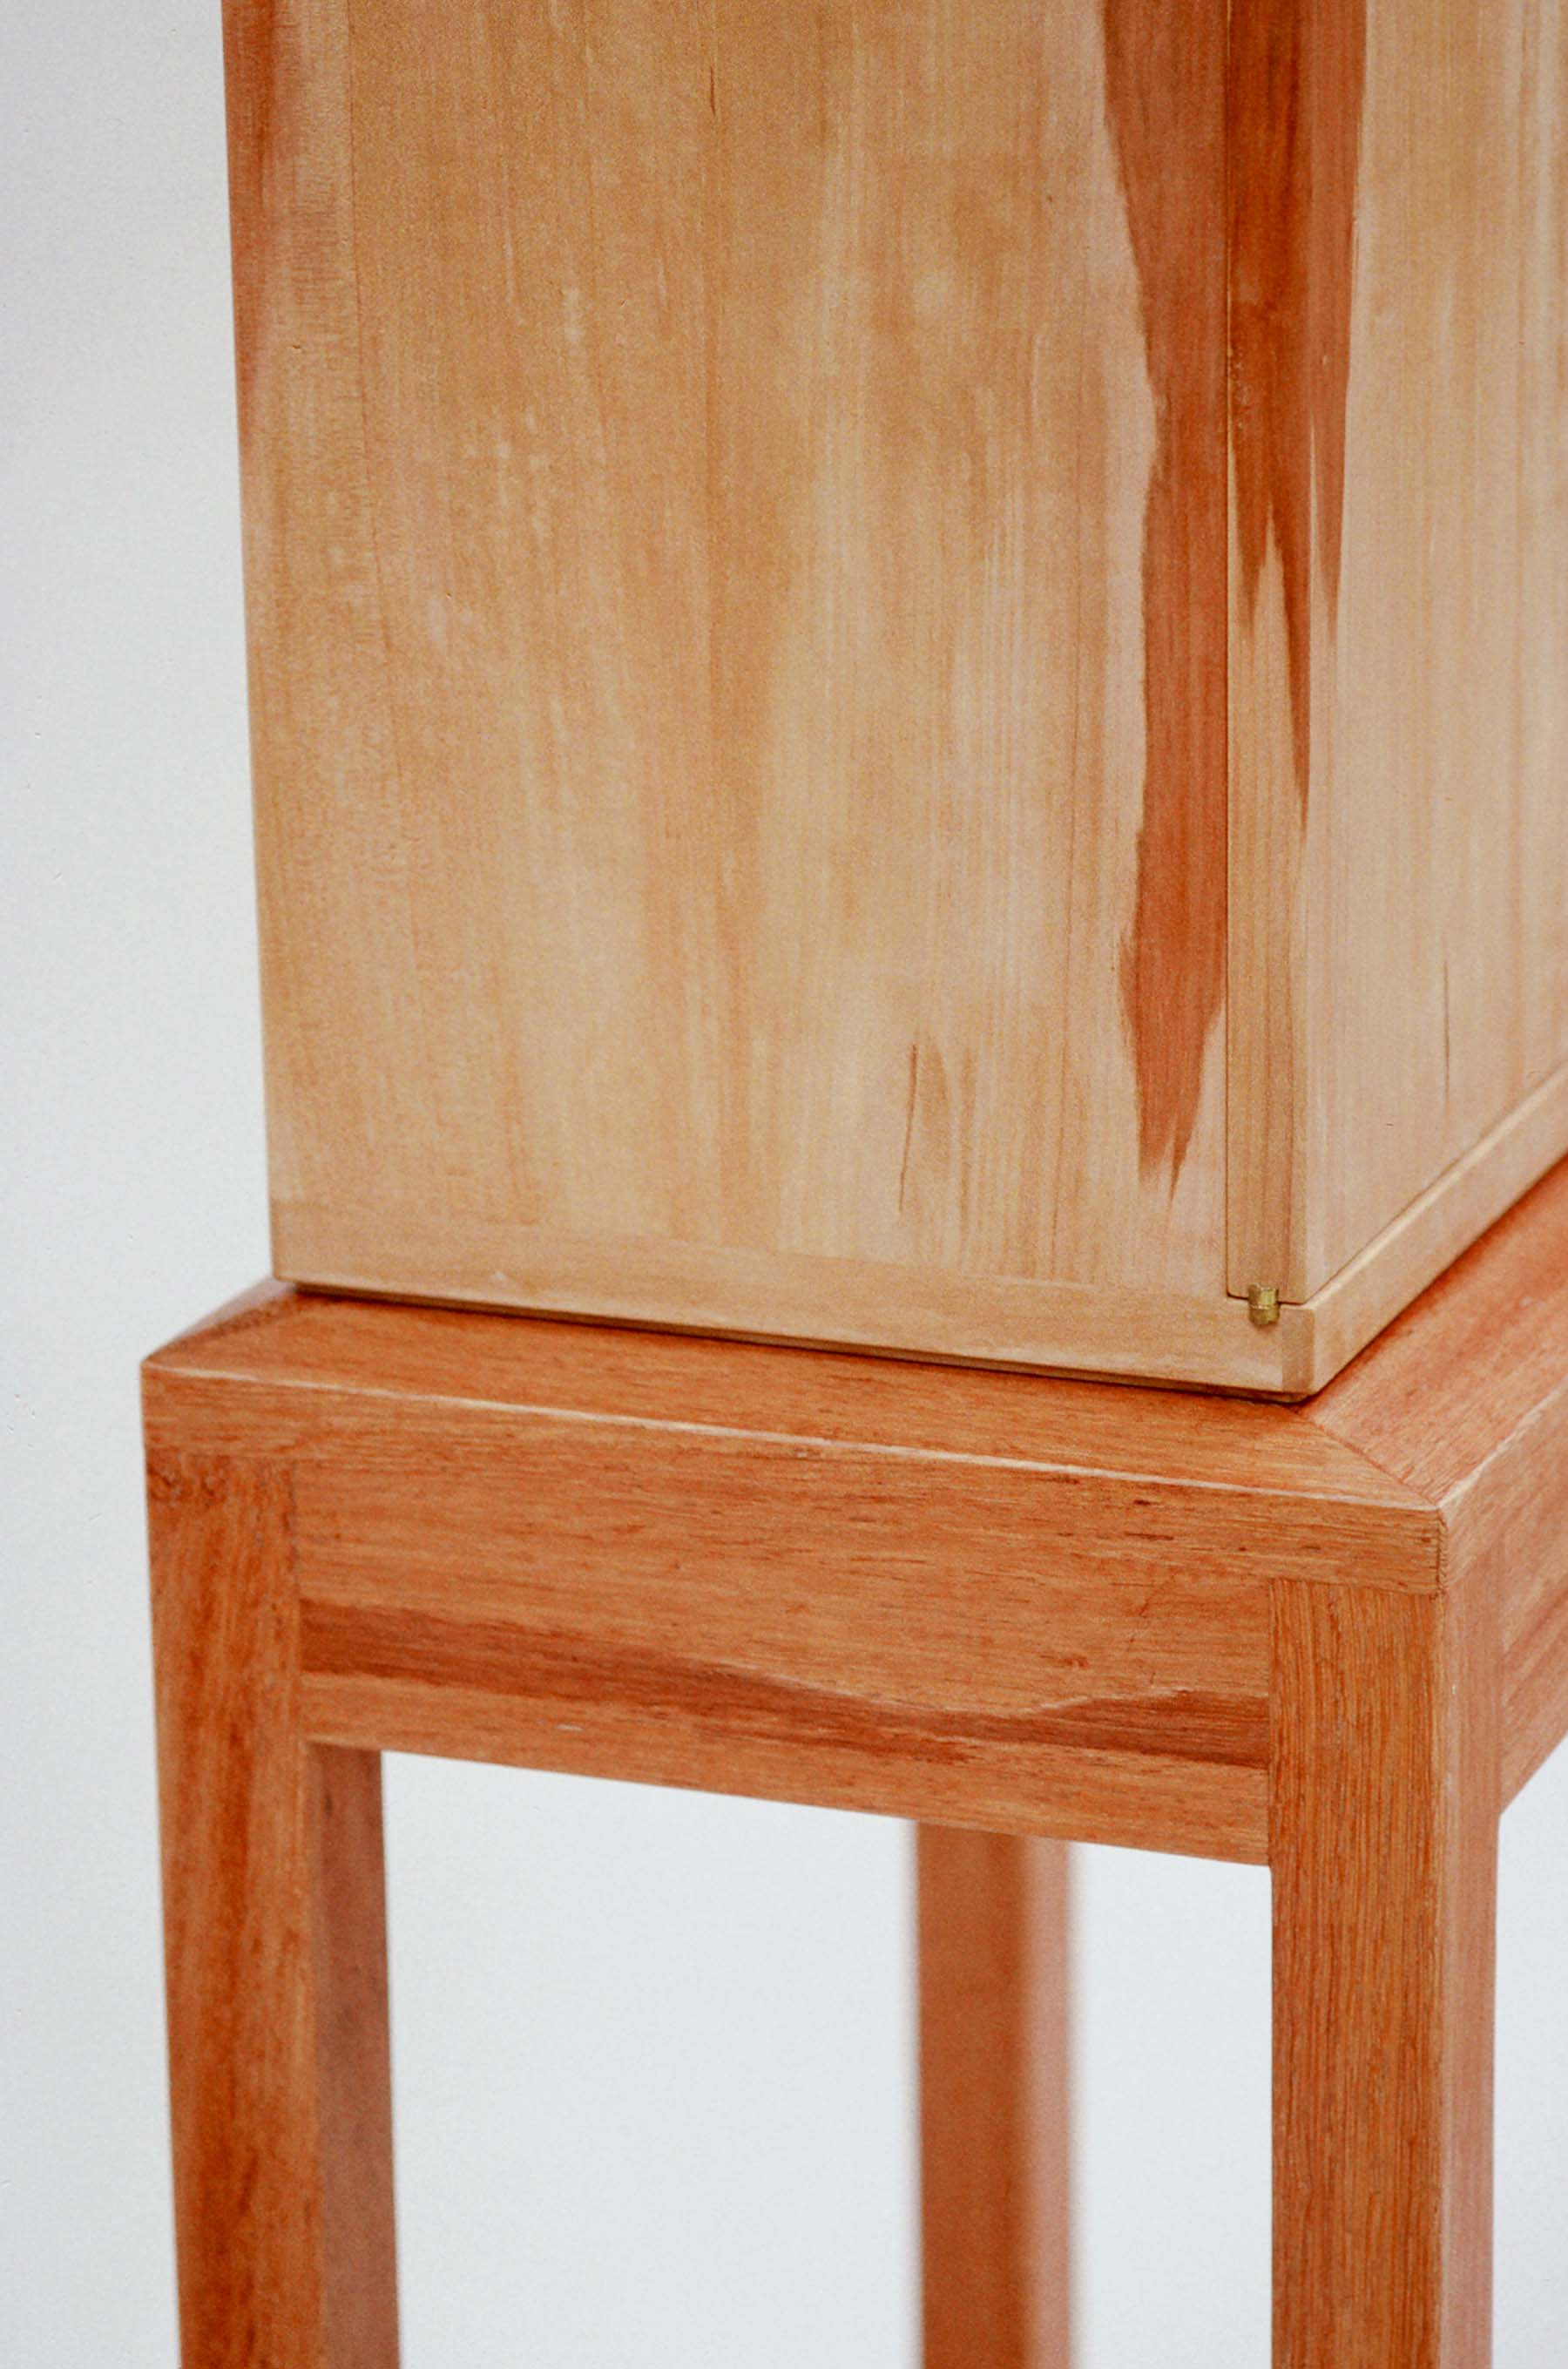 Cabinet in Unsteamed Pear Wood